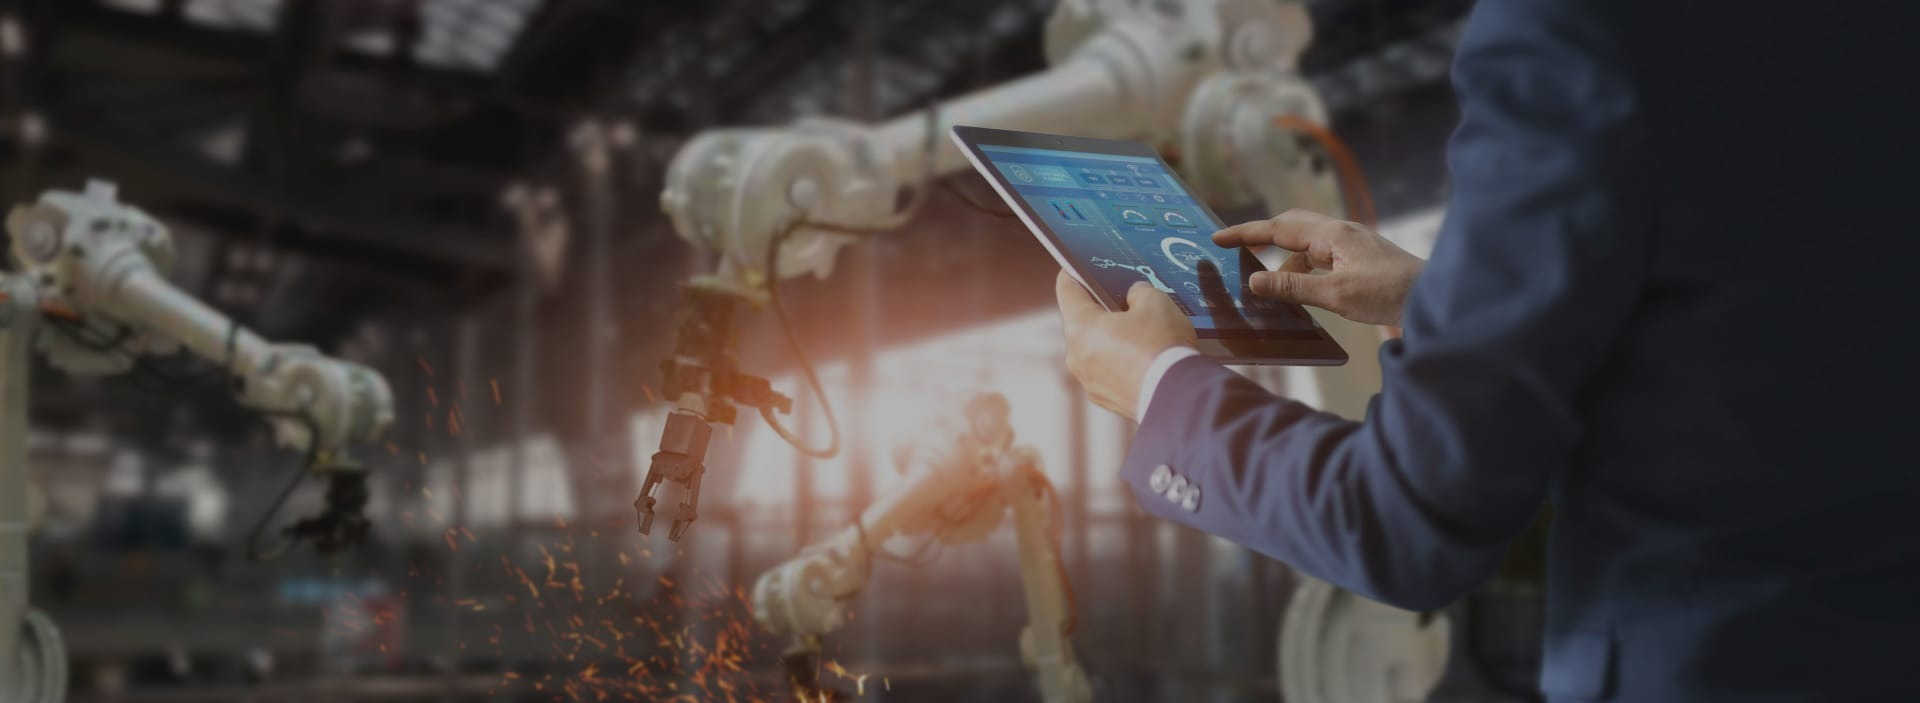 IoT trends in manufacturing that will rule in 2020 and beyond